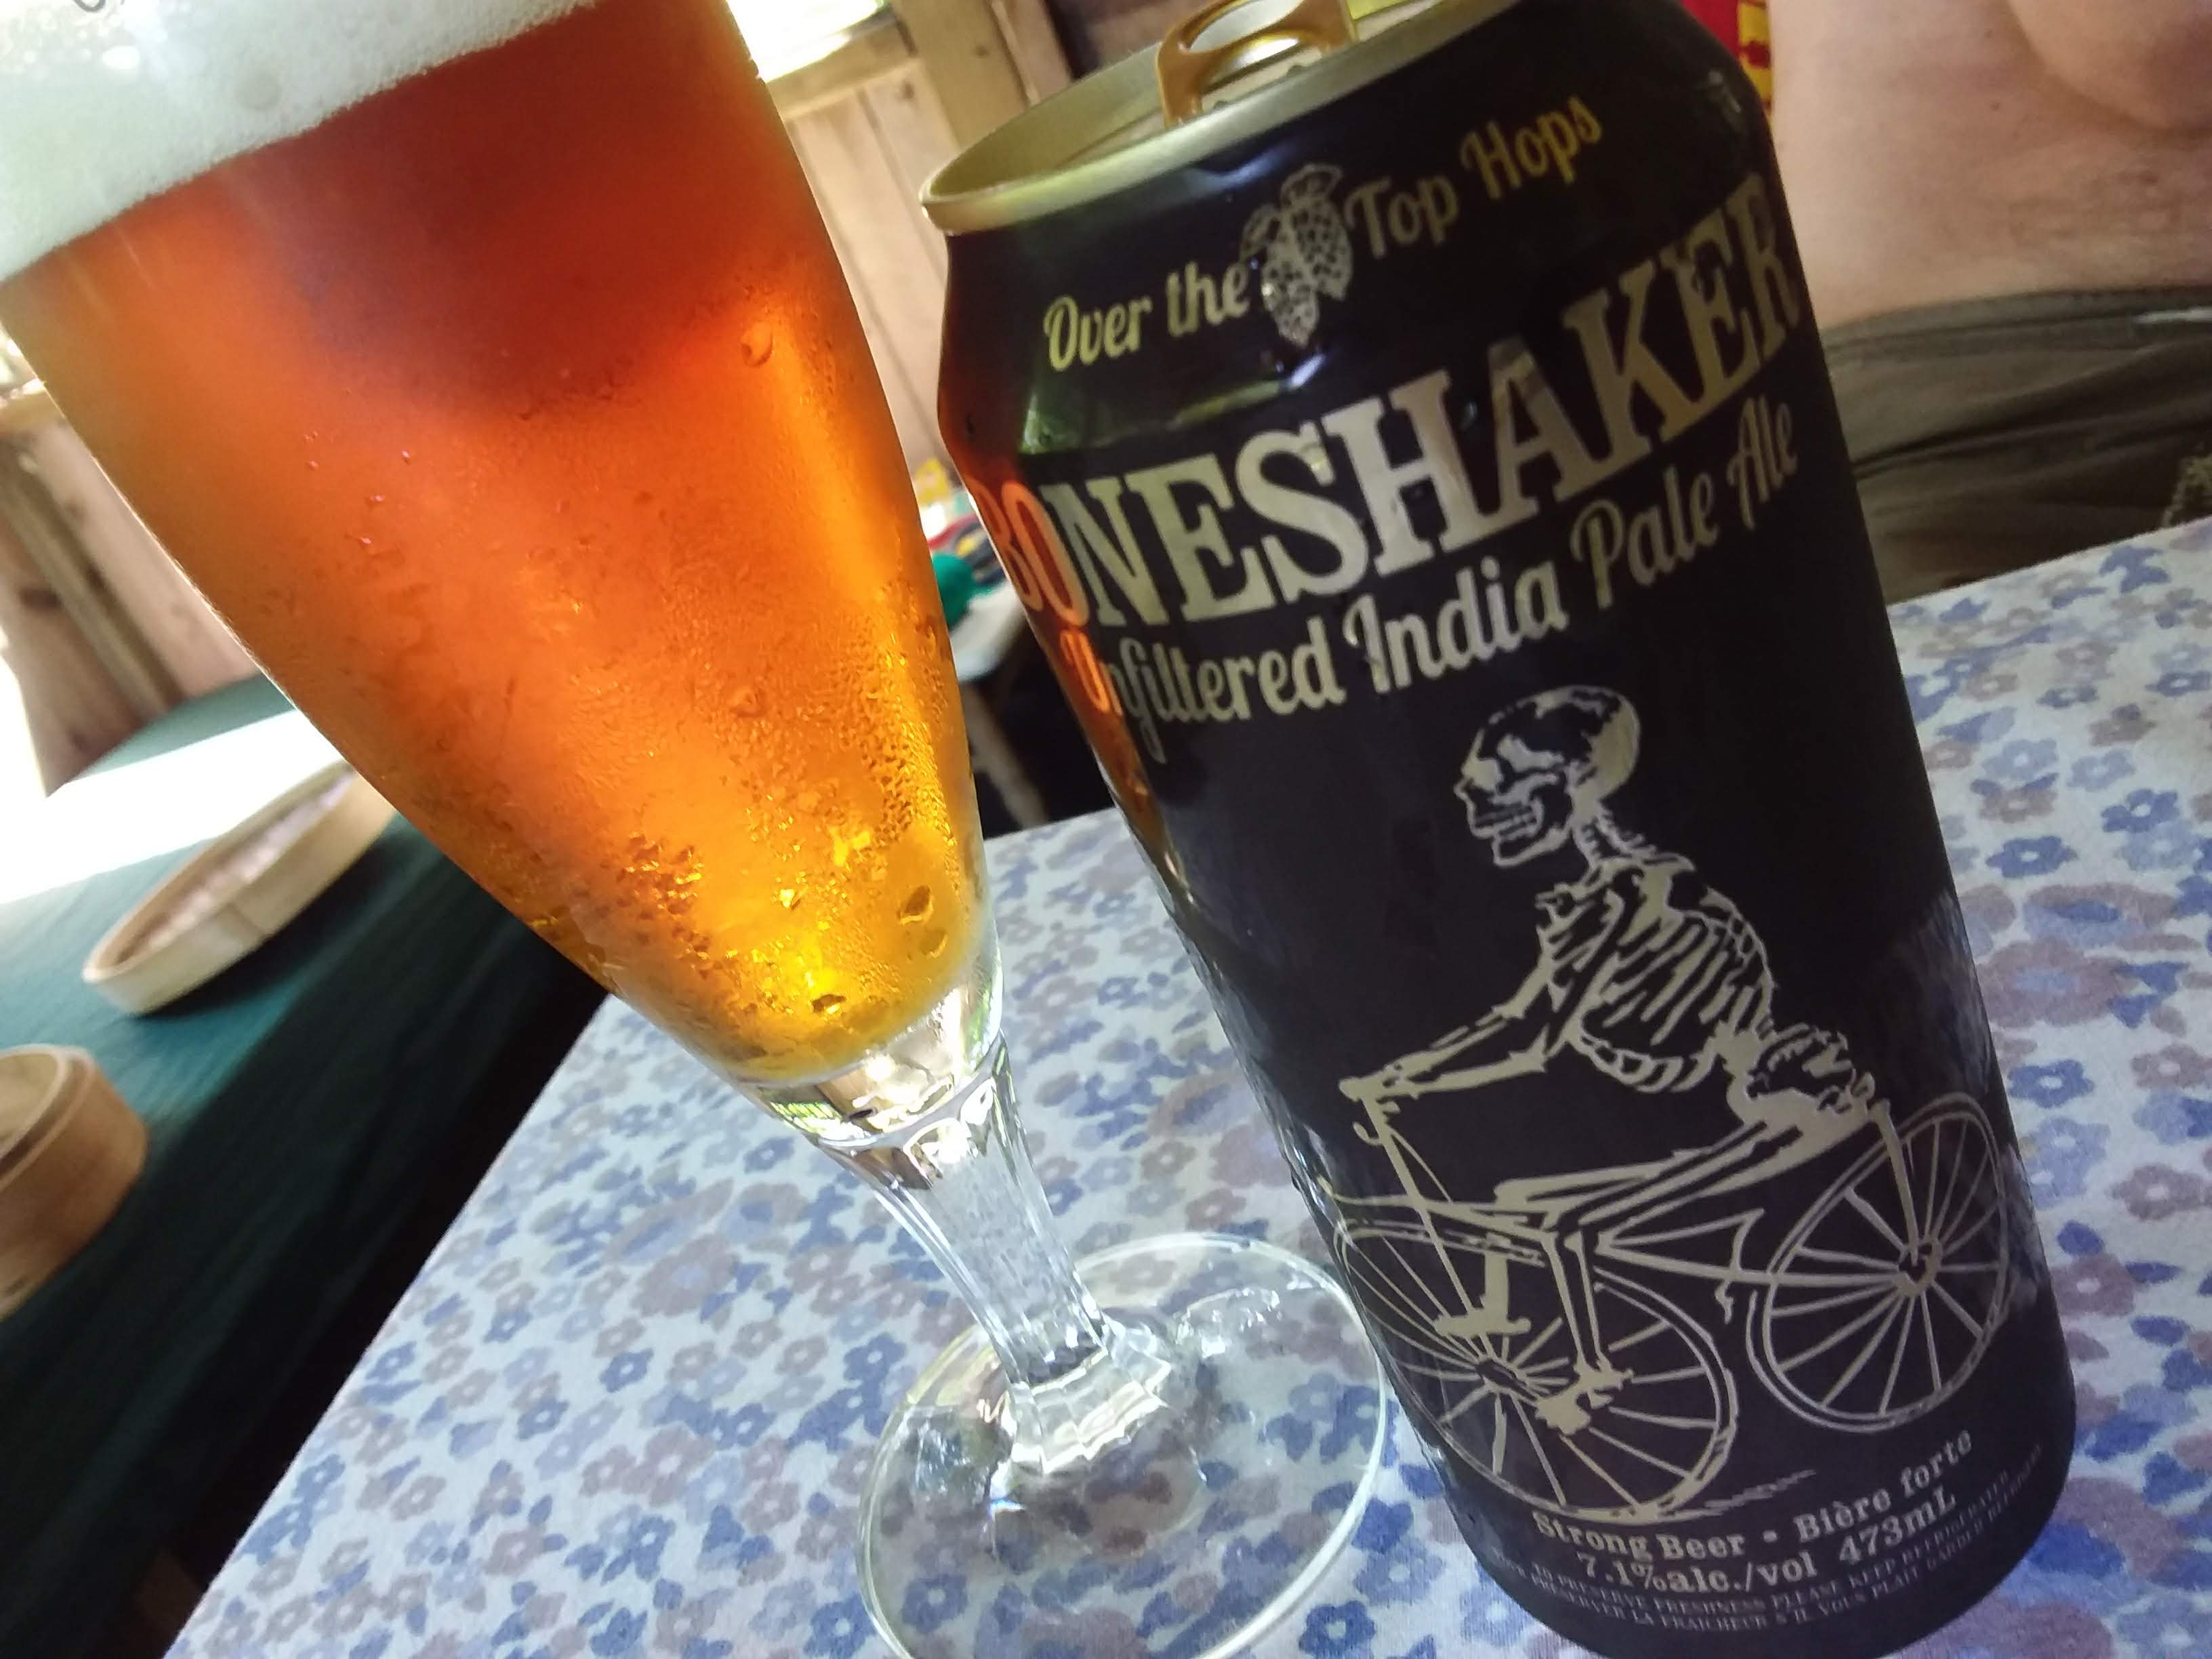 Boneshaker Unfiltered IPA